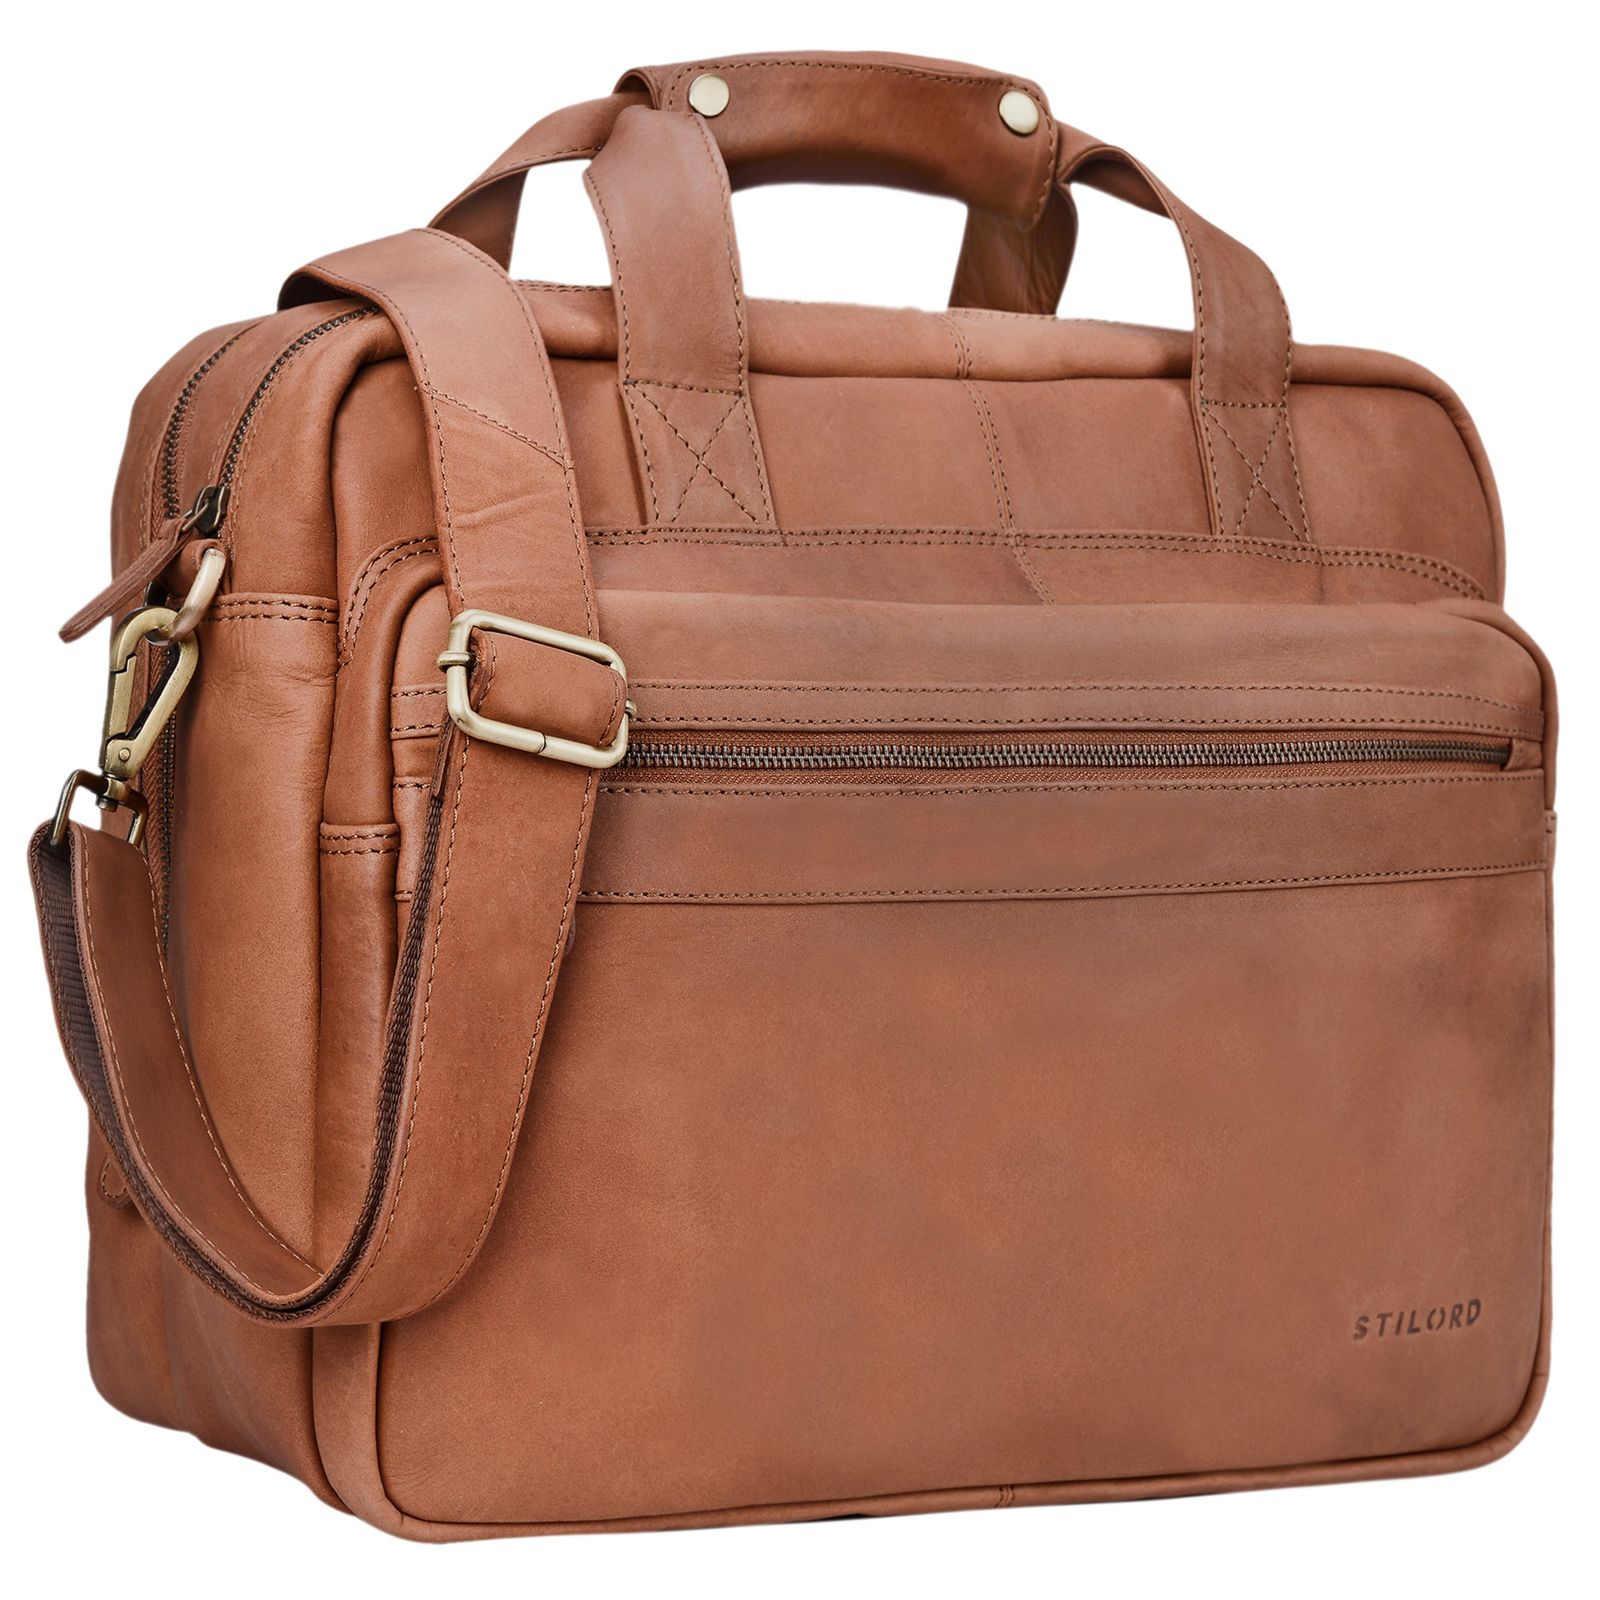 "STILORD ""Adventure"" Lehrertasche Herren Damen Aktentasche Office Büro Schulter- oder Umhängetasche Businesstasche für Laptop Leder  - Bild 10"